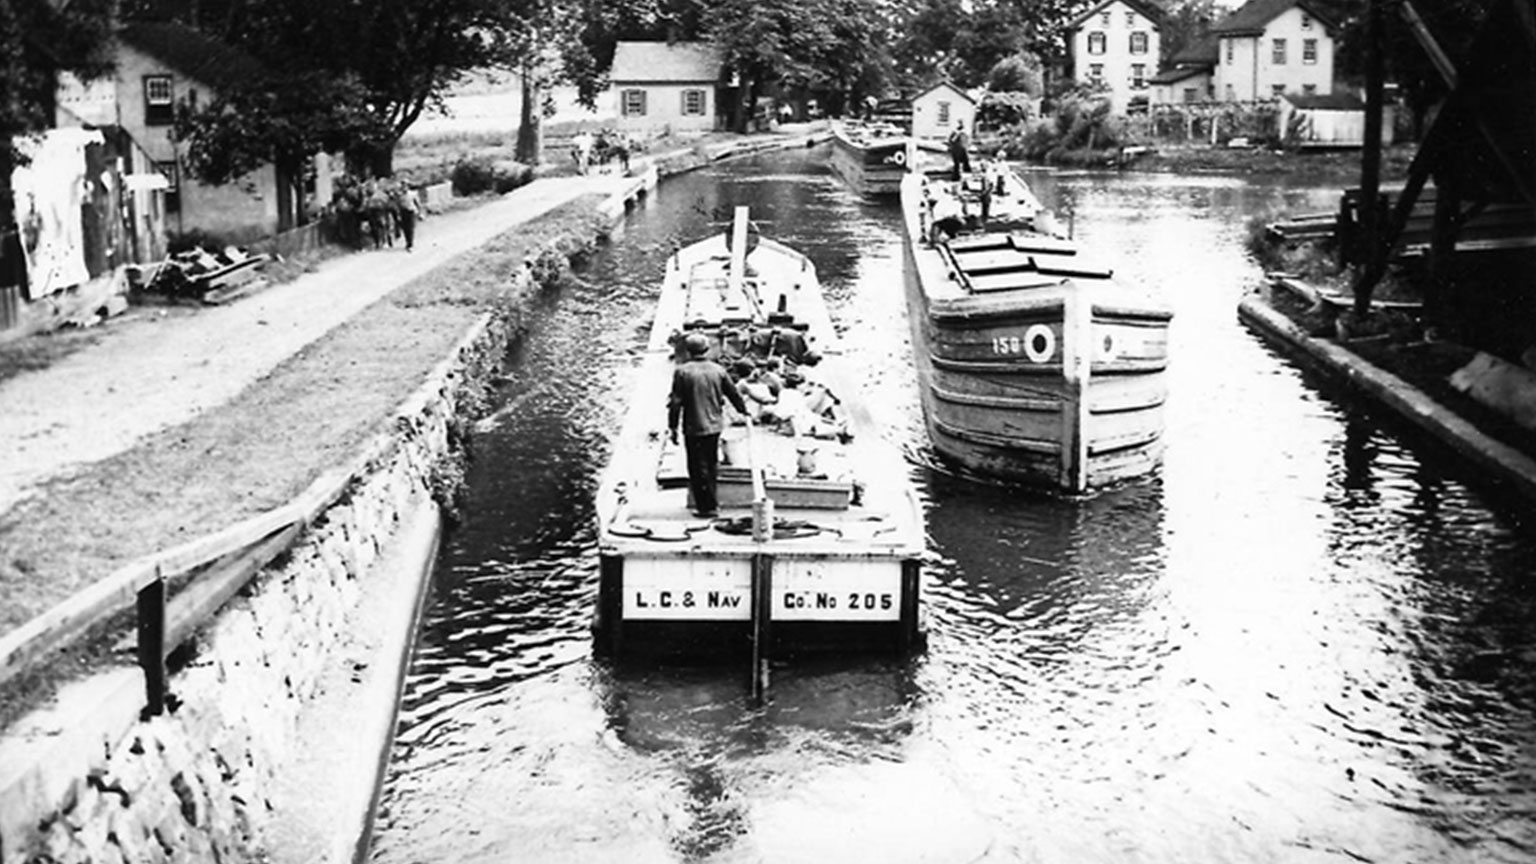 This is what Finn and his family would have seen as they first caught a glimpse of the canal system they would eventually call their work home.